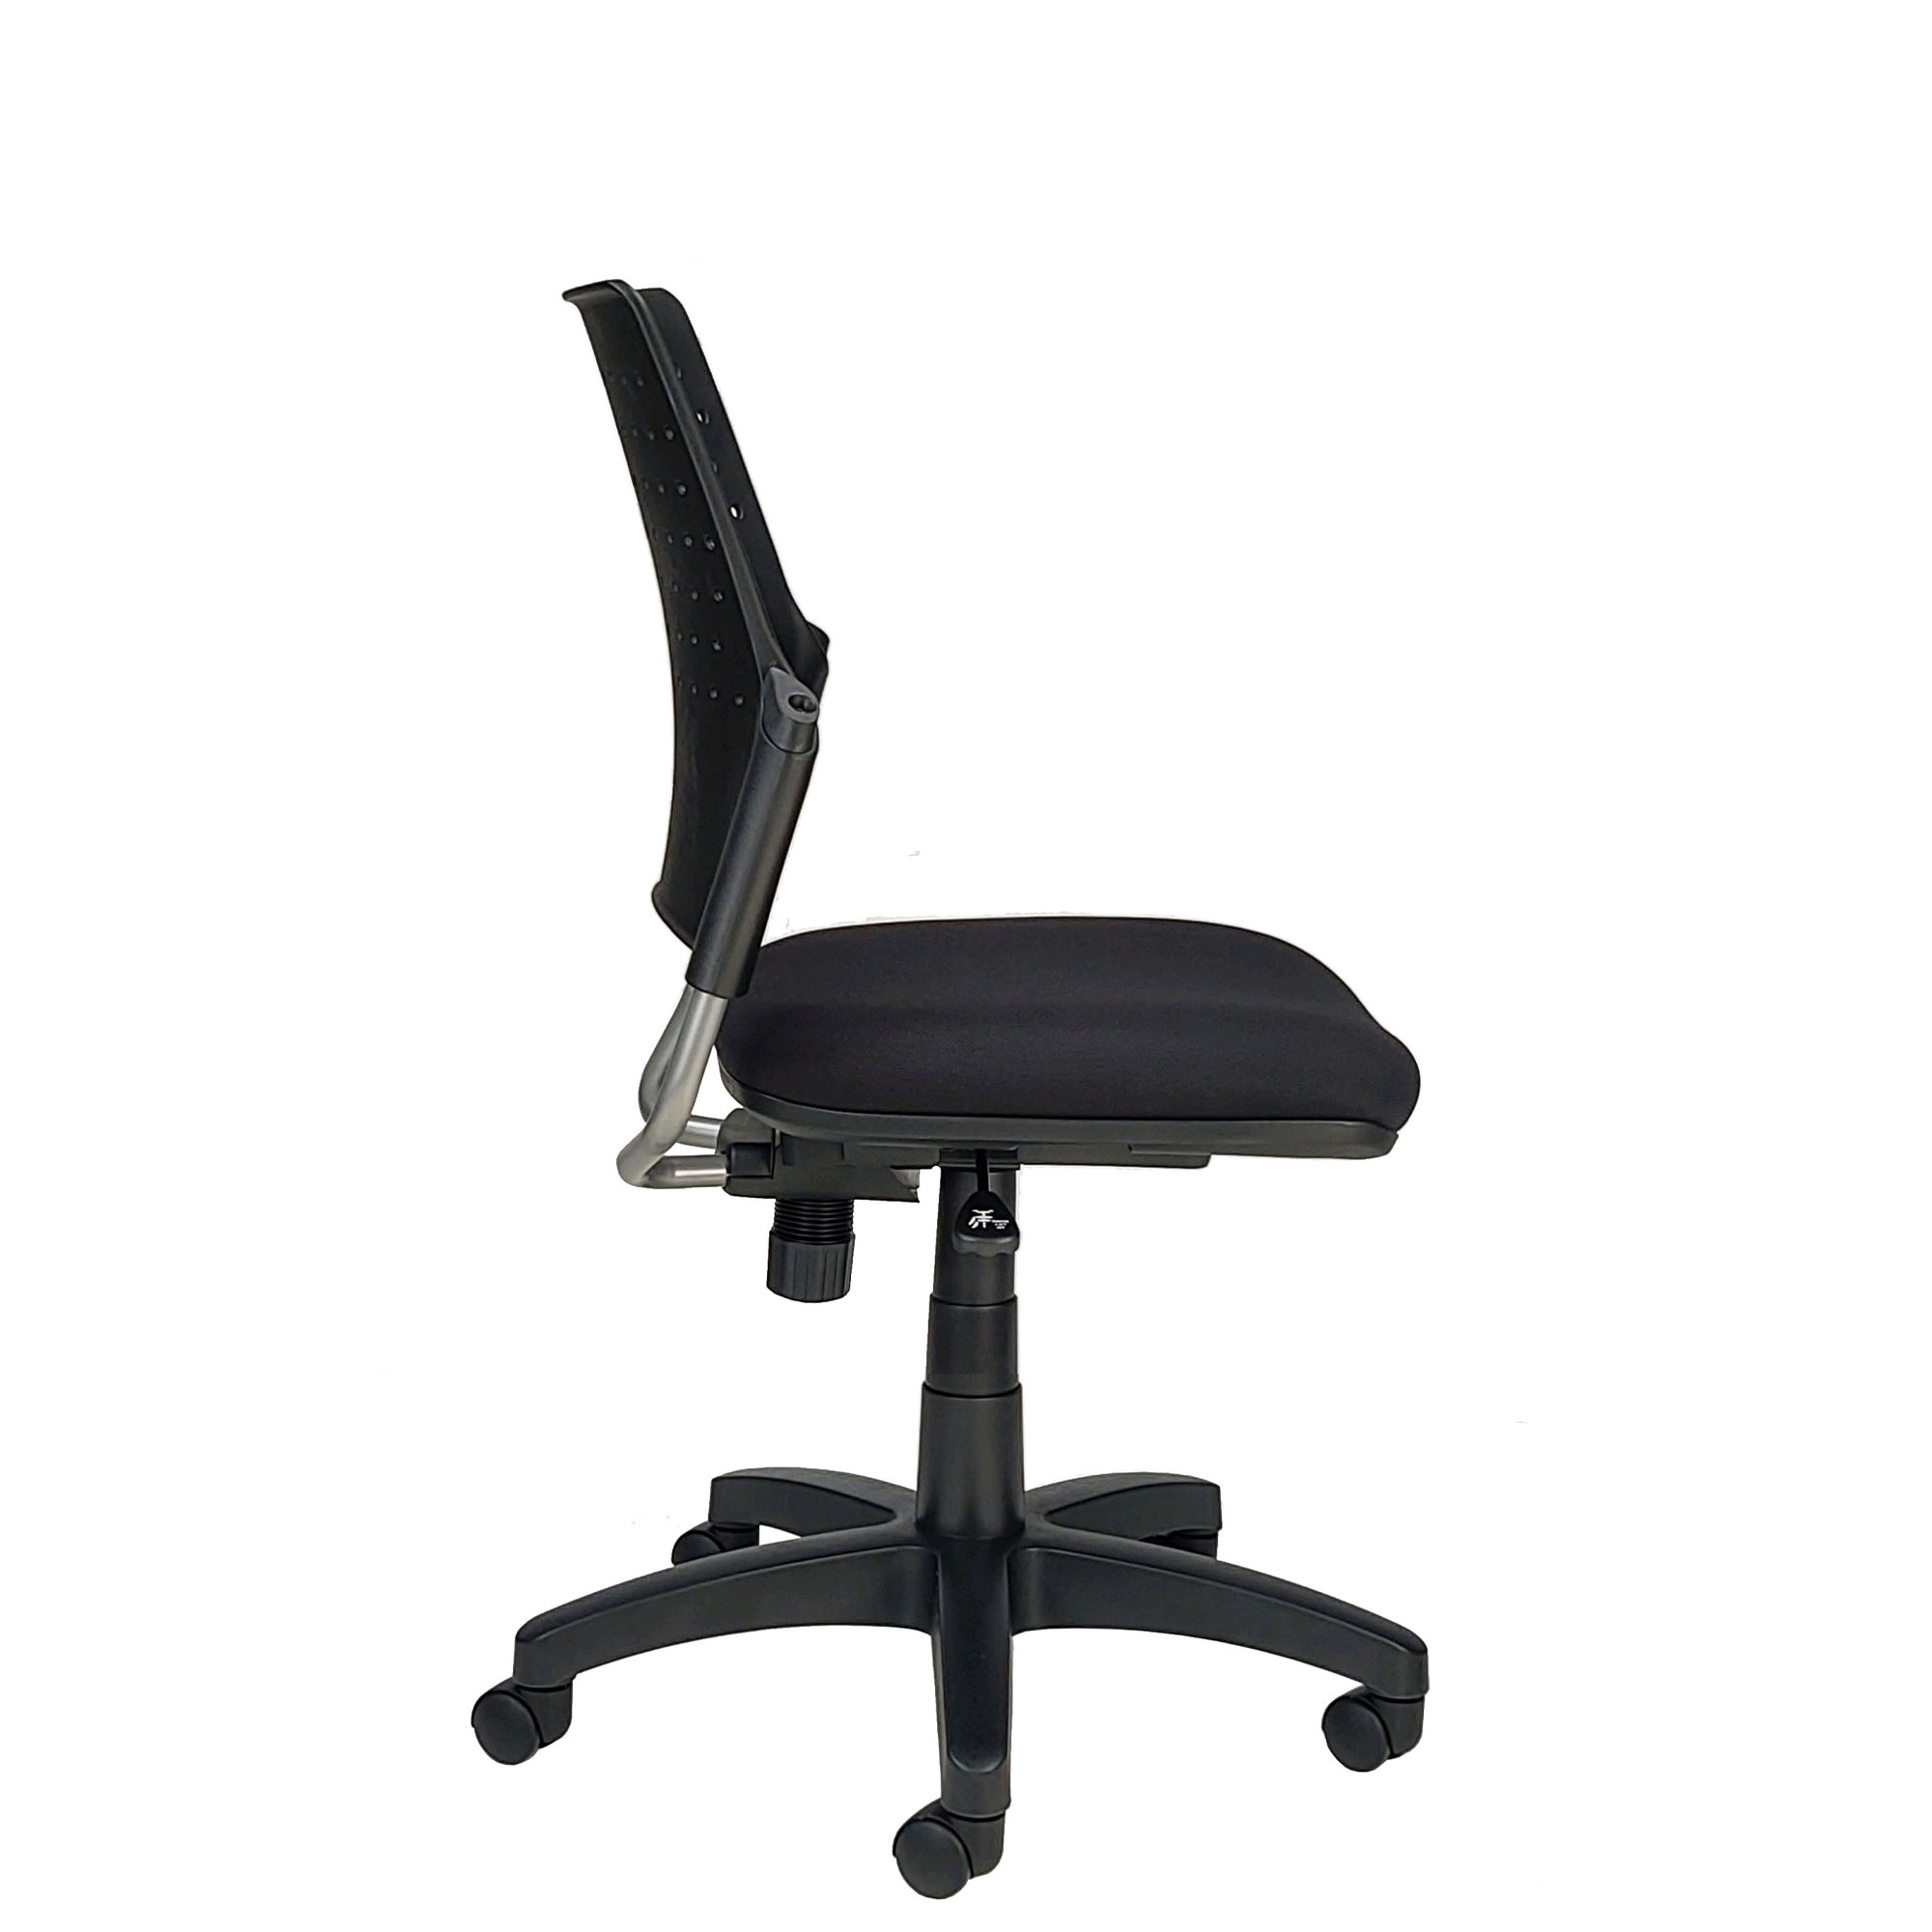 Small Black Office Chair